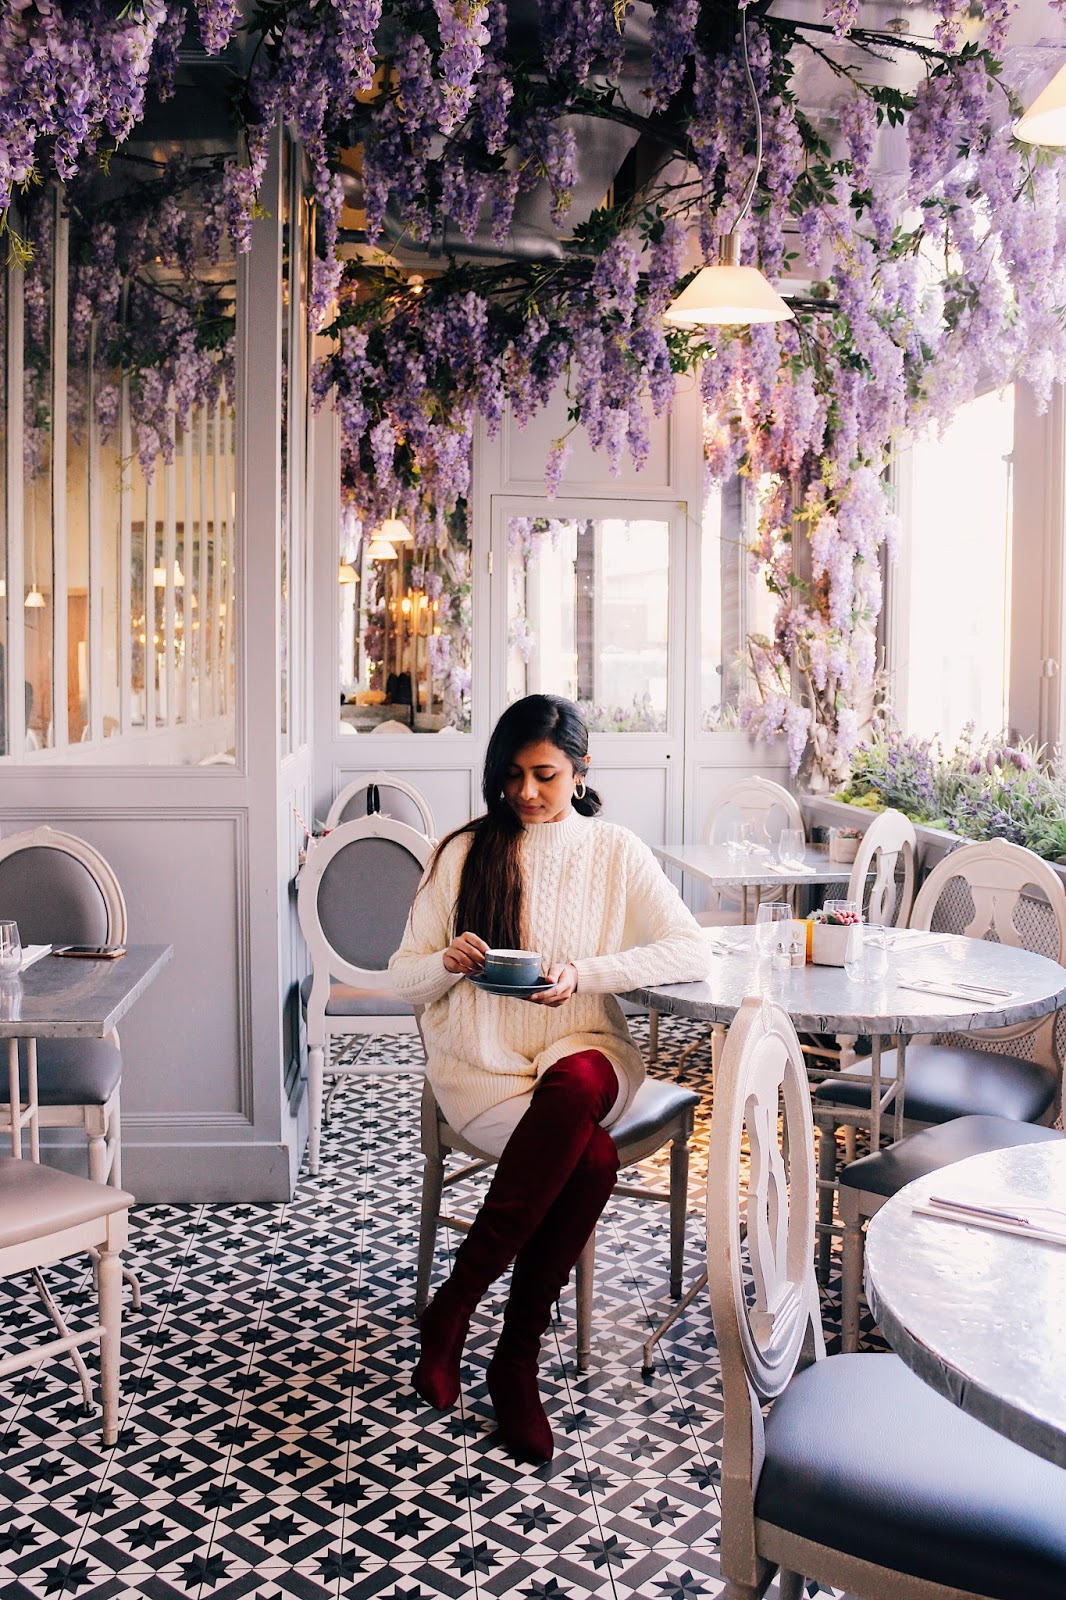 a girls instagram guide to london, instagram spots in london, instagram worthy places london, aubaine selfridges, wisteria, wisteria london, avocado toast